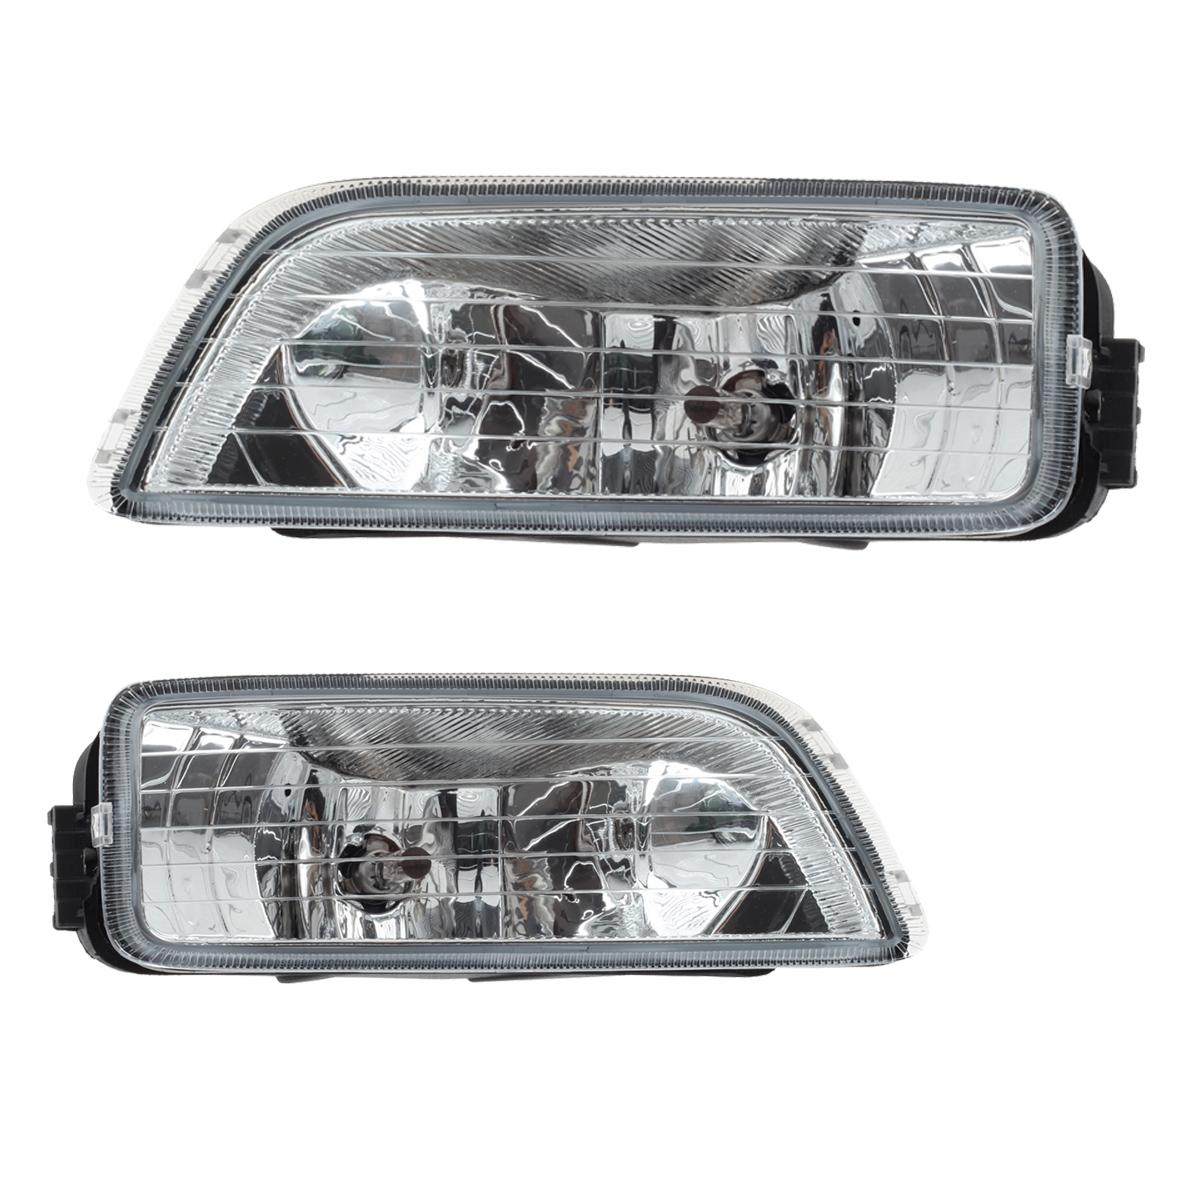 New Fog Light For Acura TL 2004-2008/ Honda Accord 2003